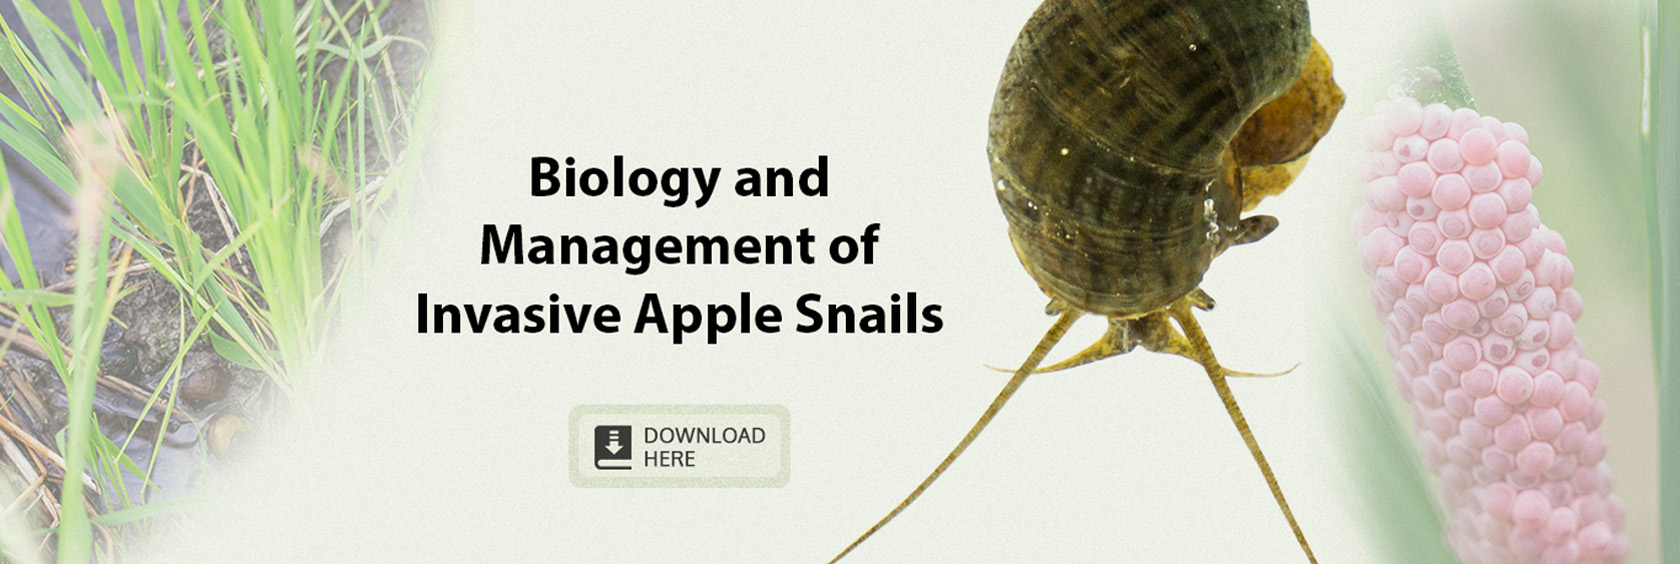 Biology-and-management-of-invasive-apple-snails